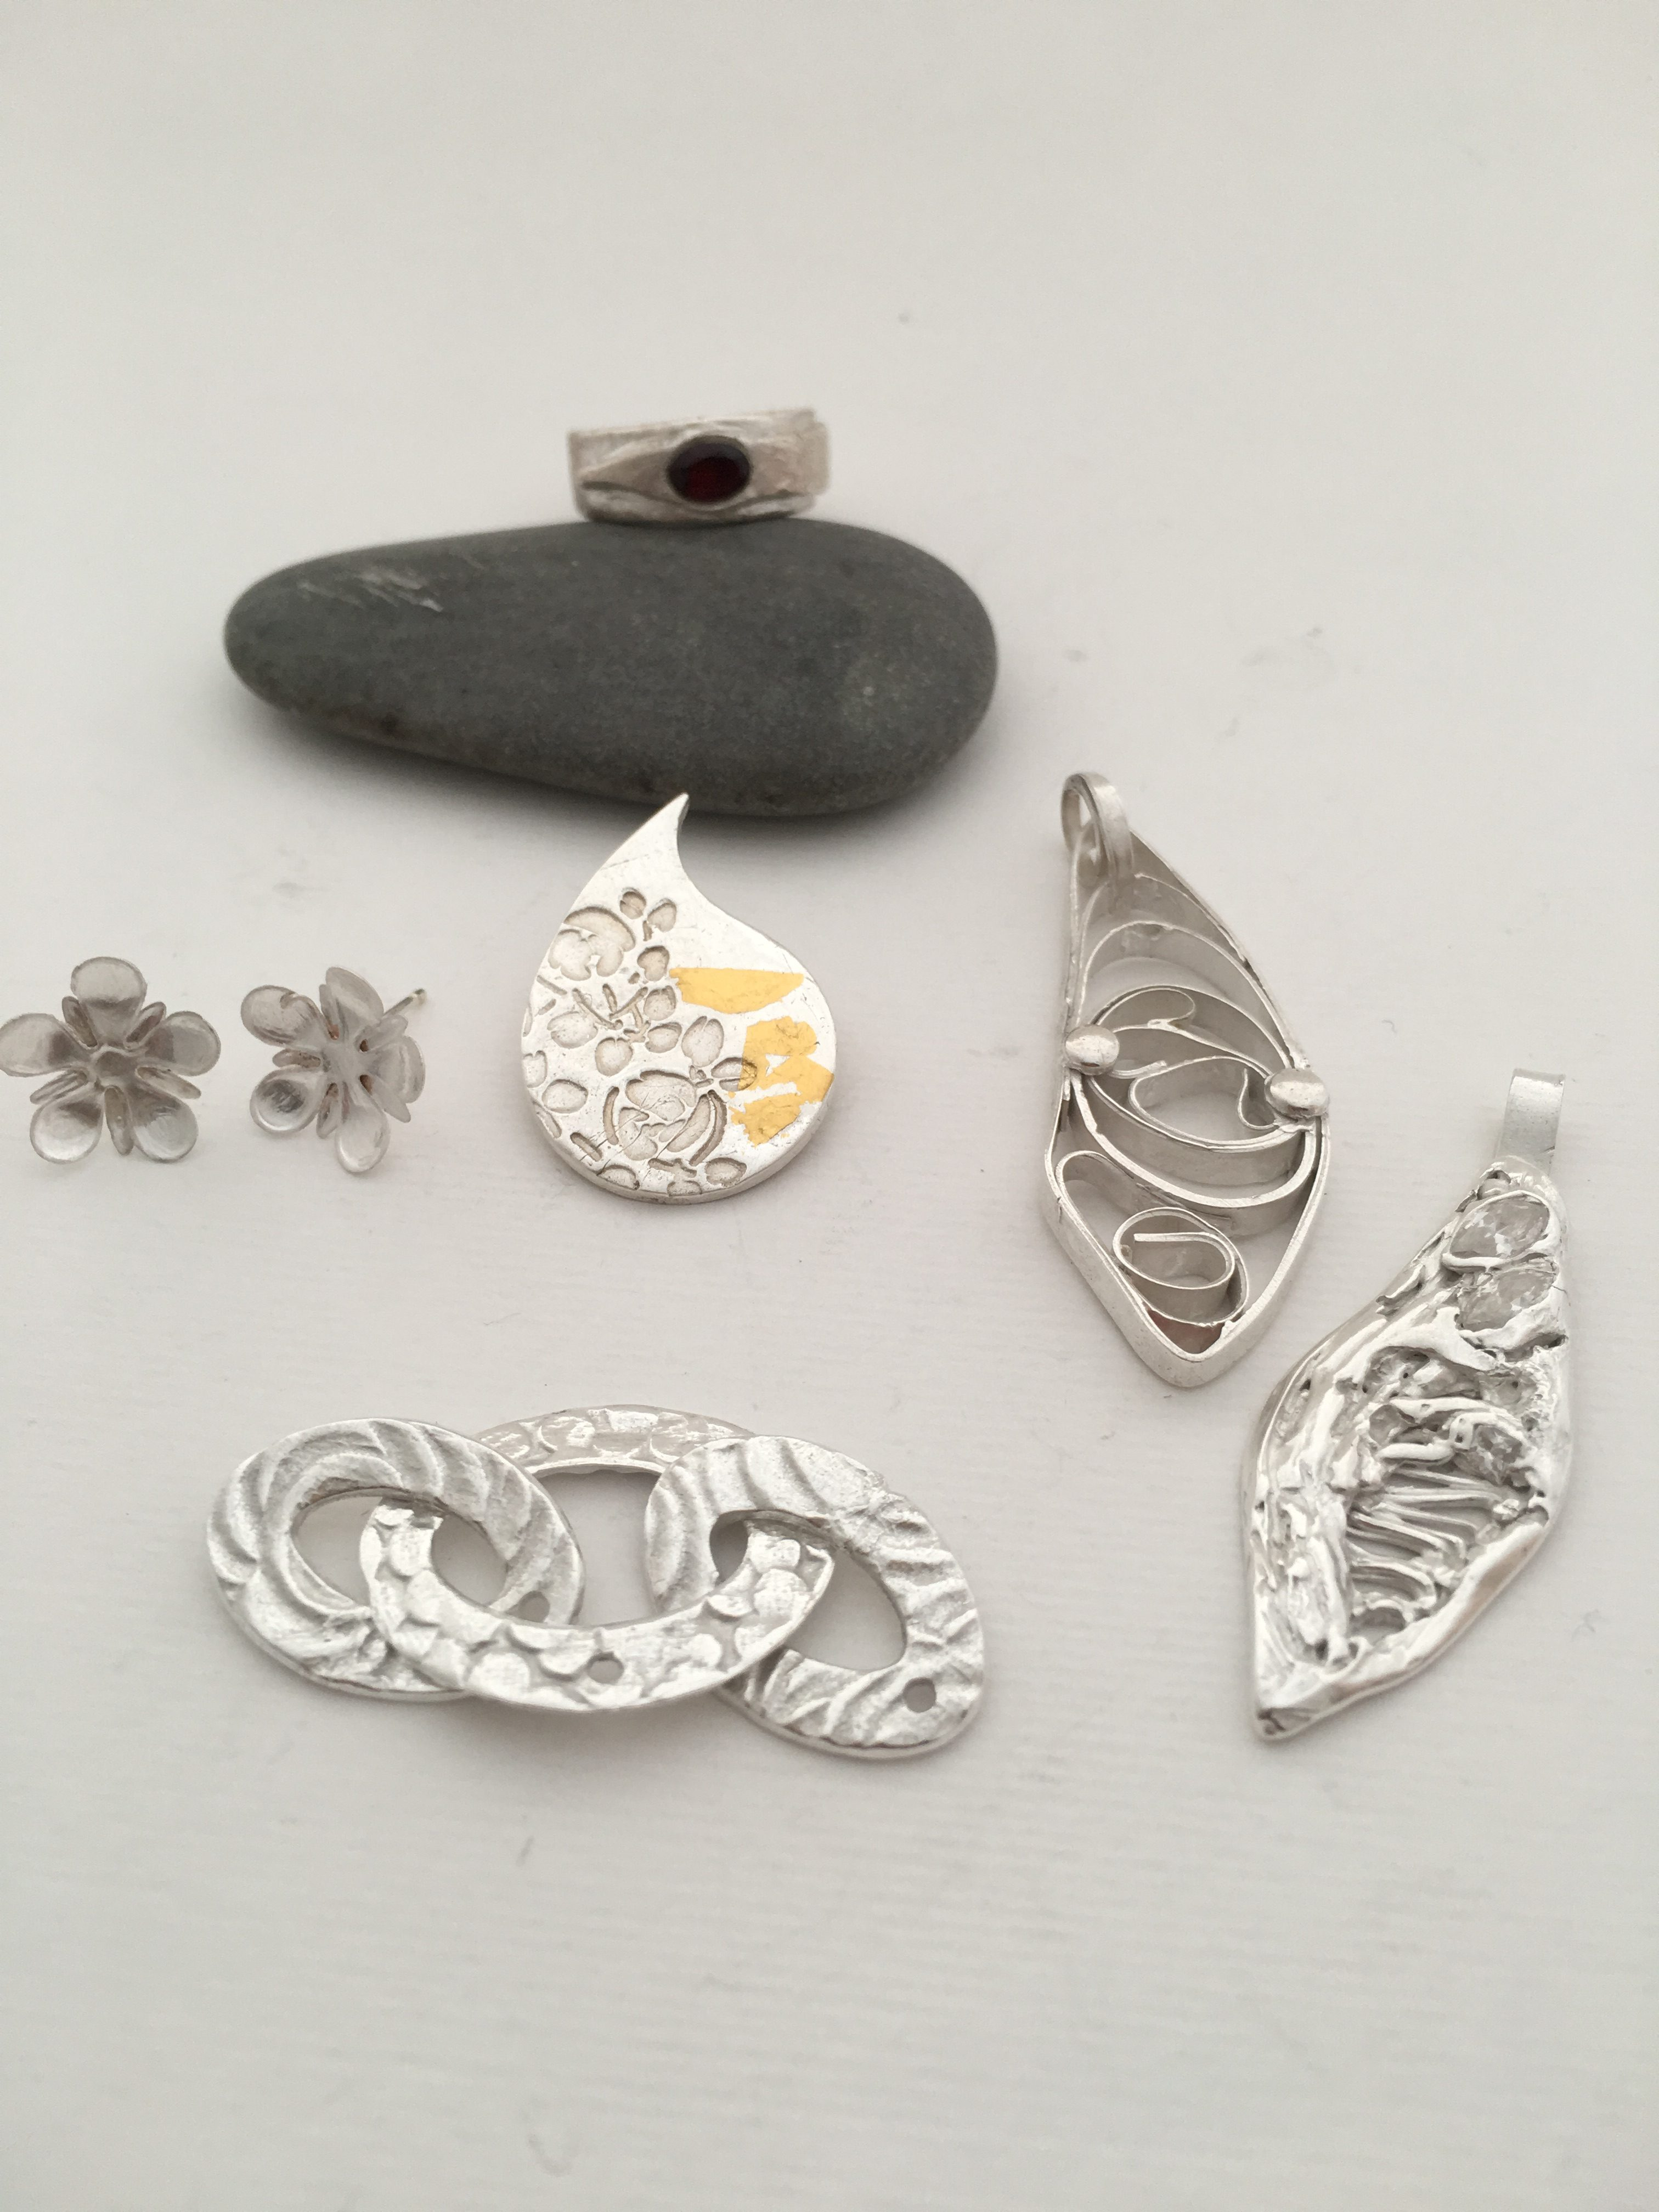 Pmc Extended Pmc Certification Module 3 Silver And Stone Jewellery